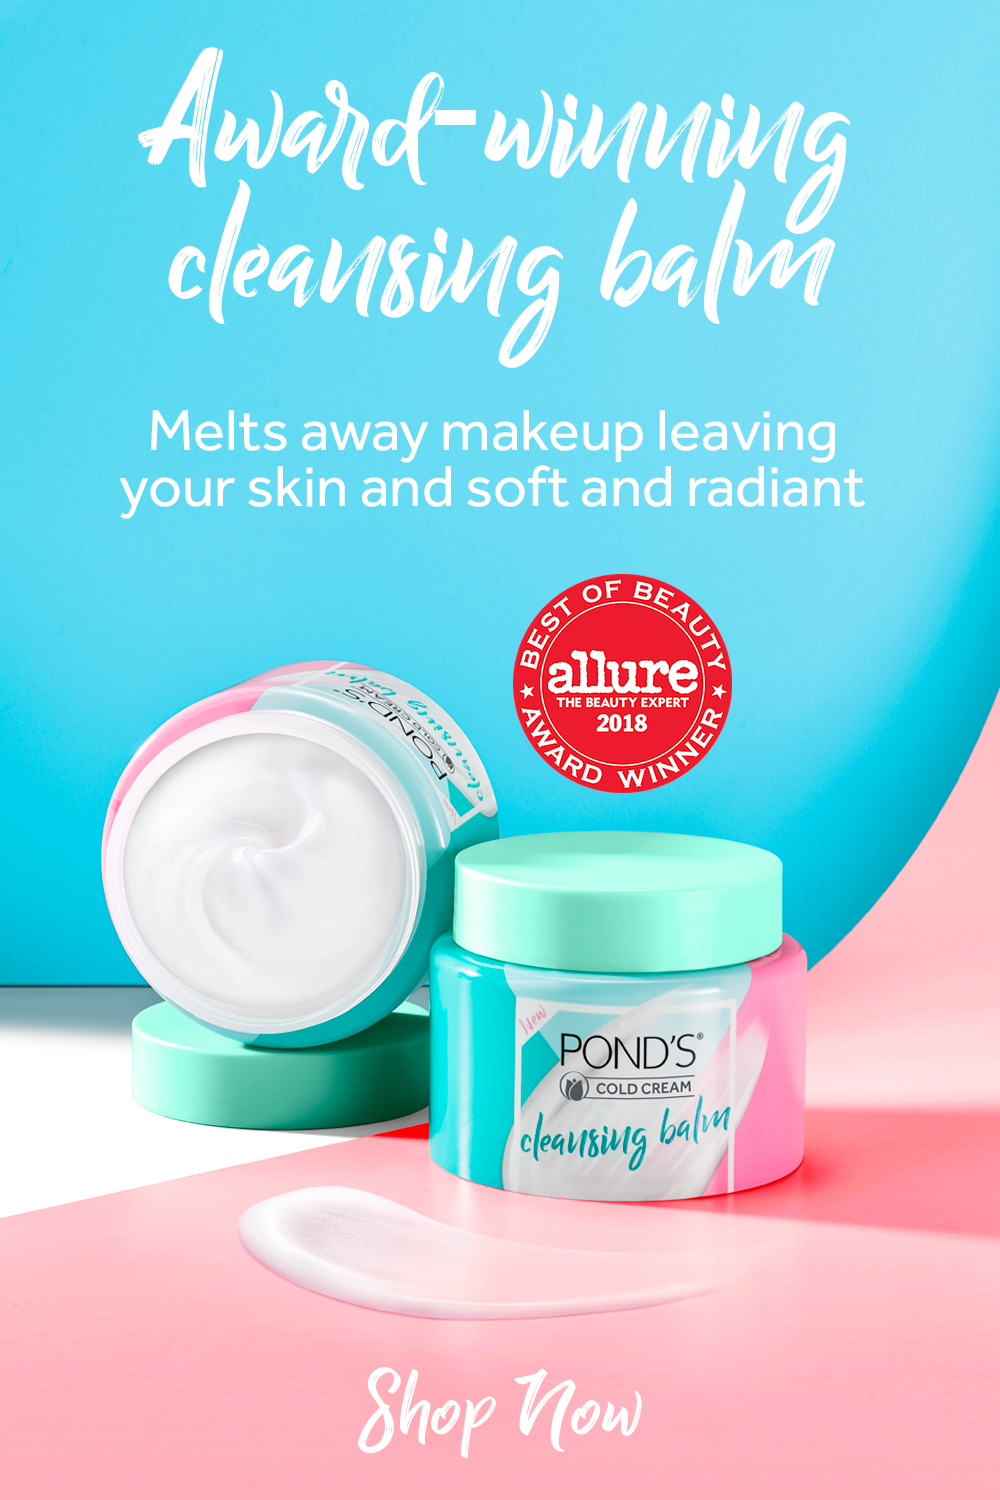 """POND'S Cleansing Balm awarded Allure's """"Best of Beauty"""